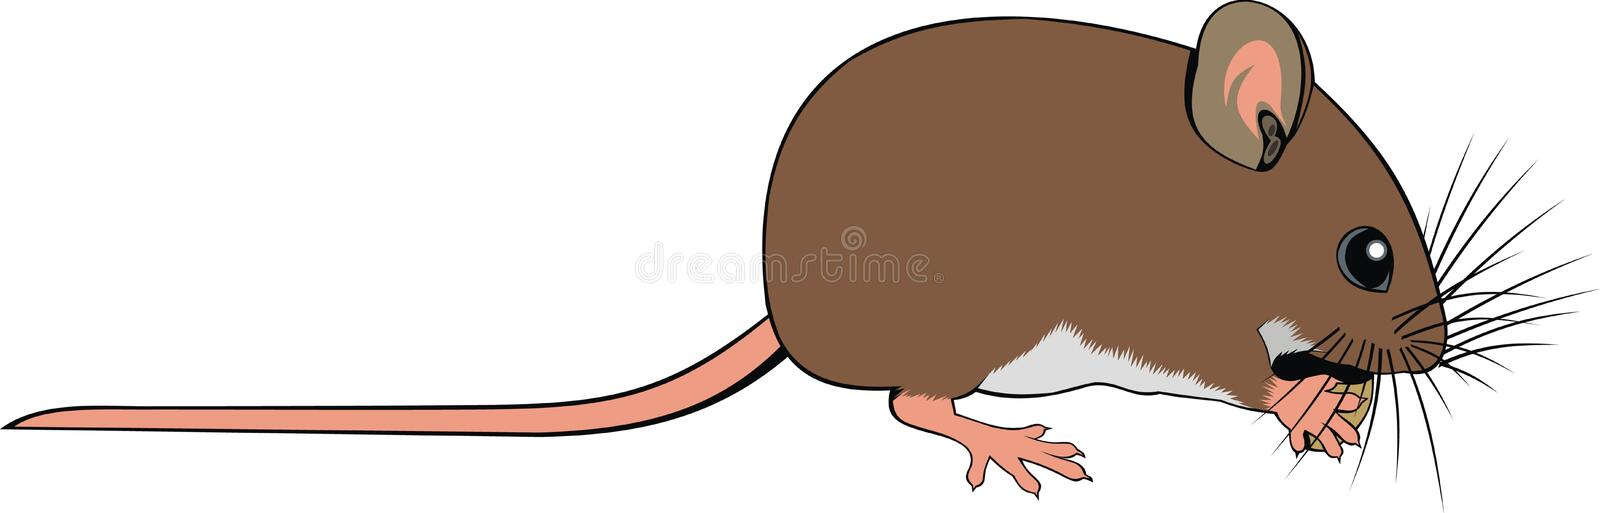 Small mouse stock illustration